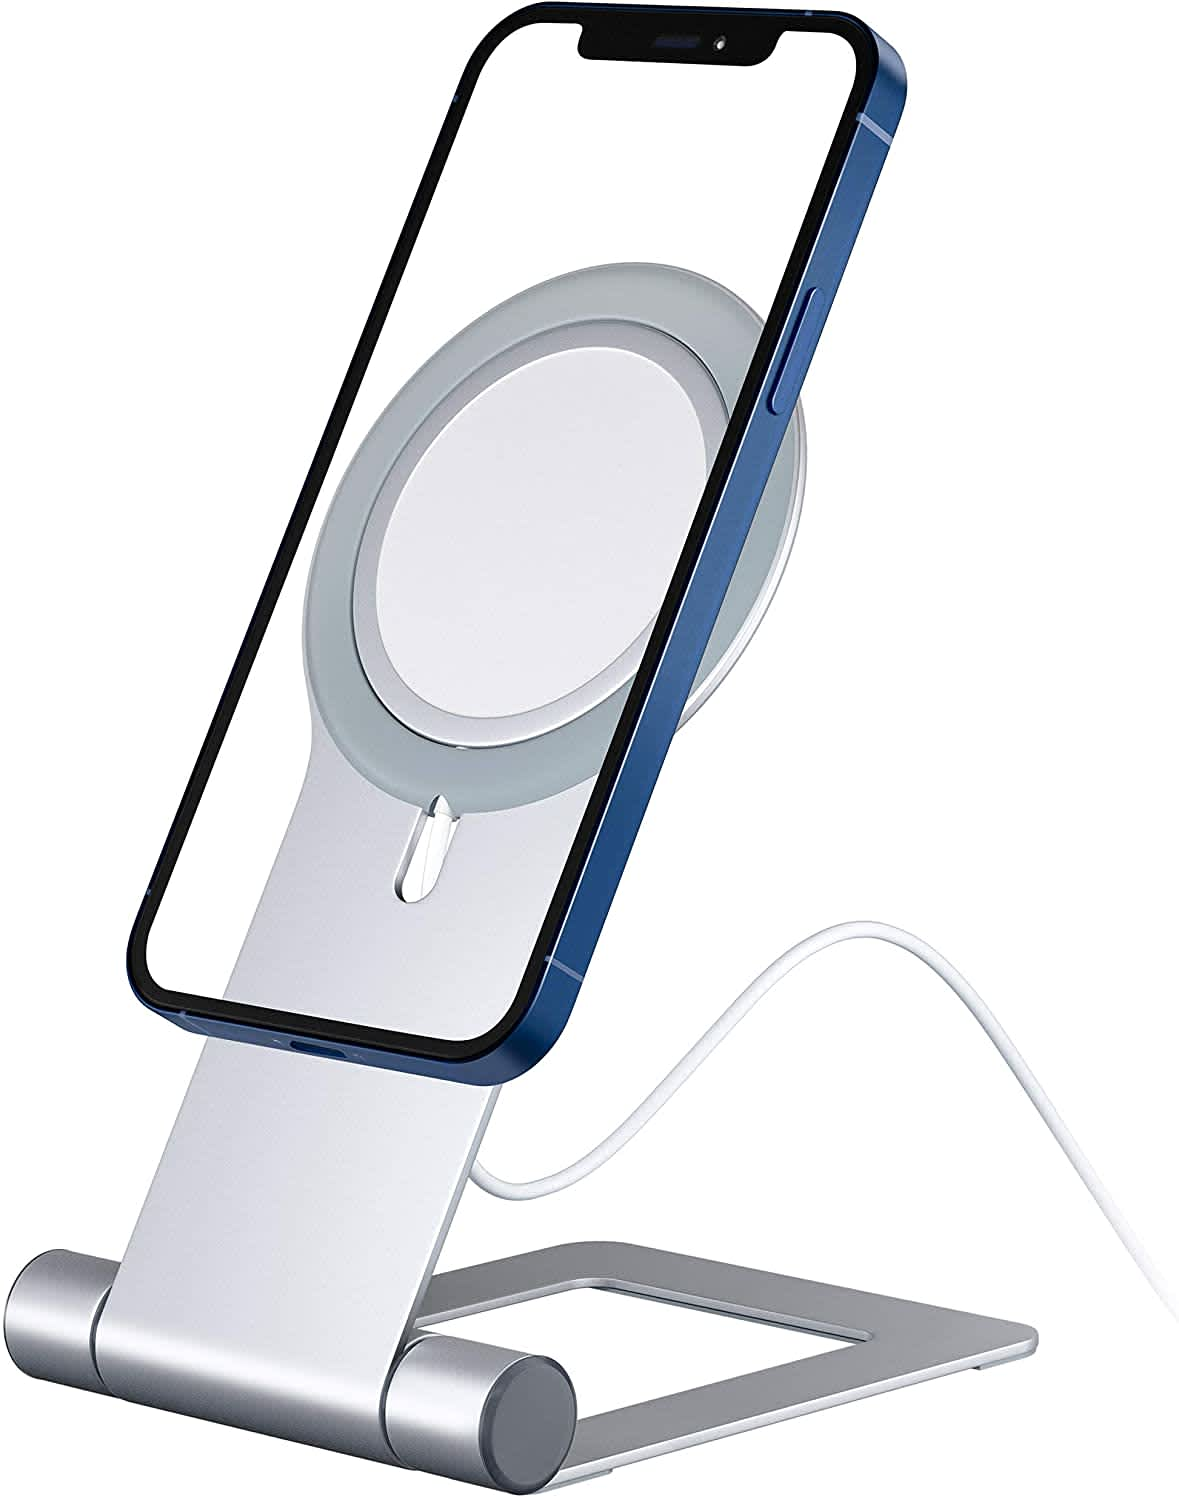 Soundance Phone Stand for MagSafe Charger